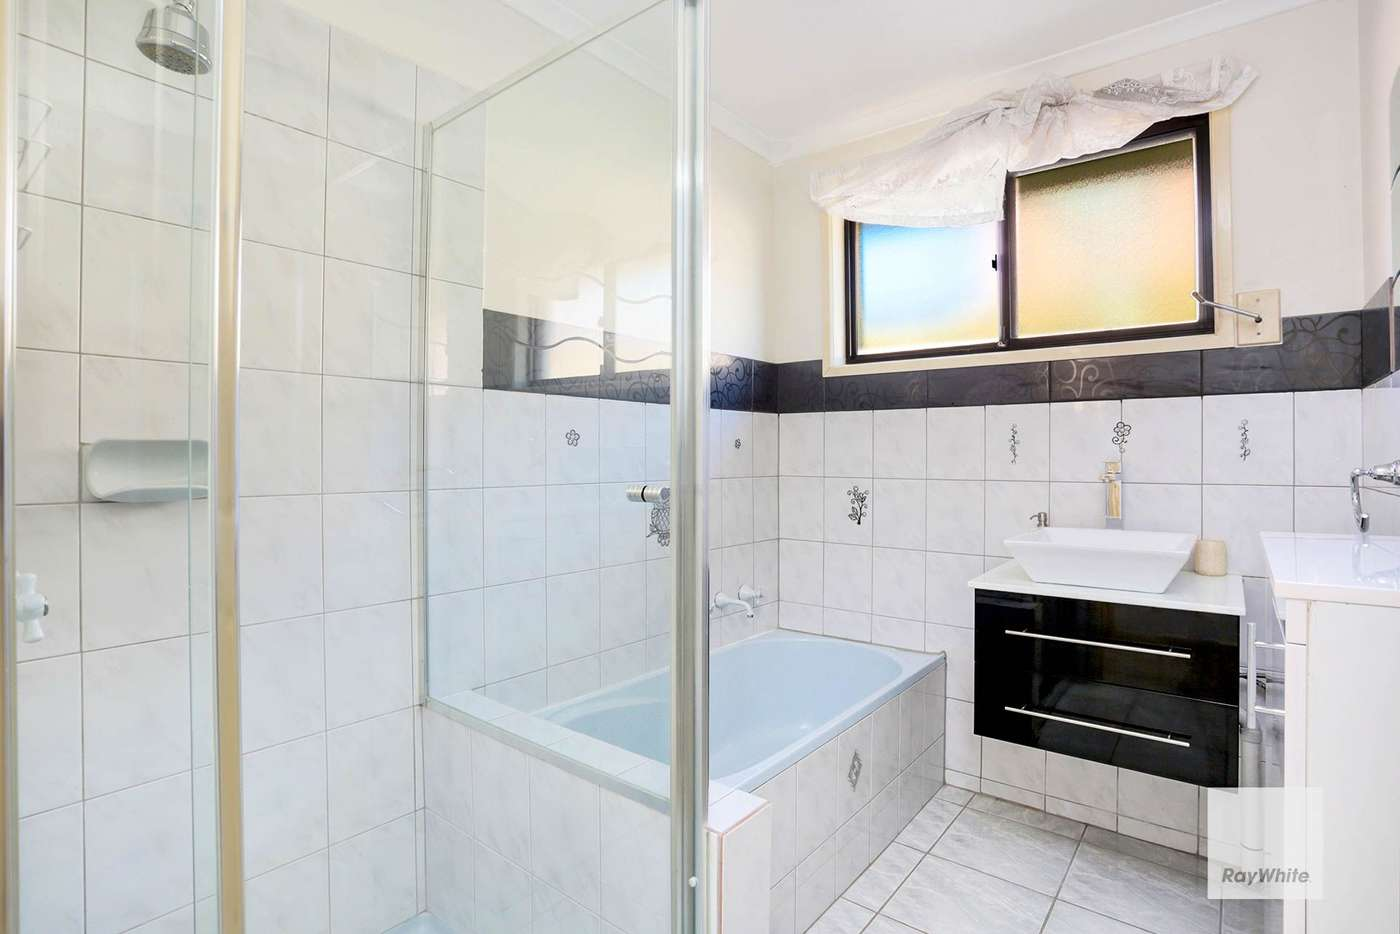 Fifth view of Homely house listing, 8 Birkett Court, Altona Meadows VIC 3028